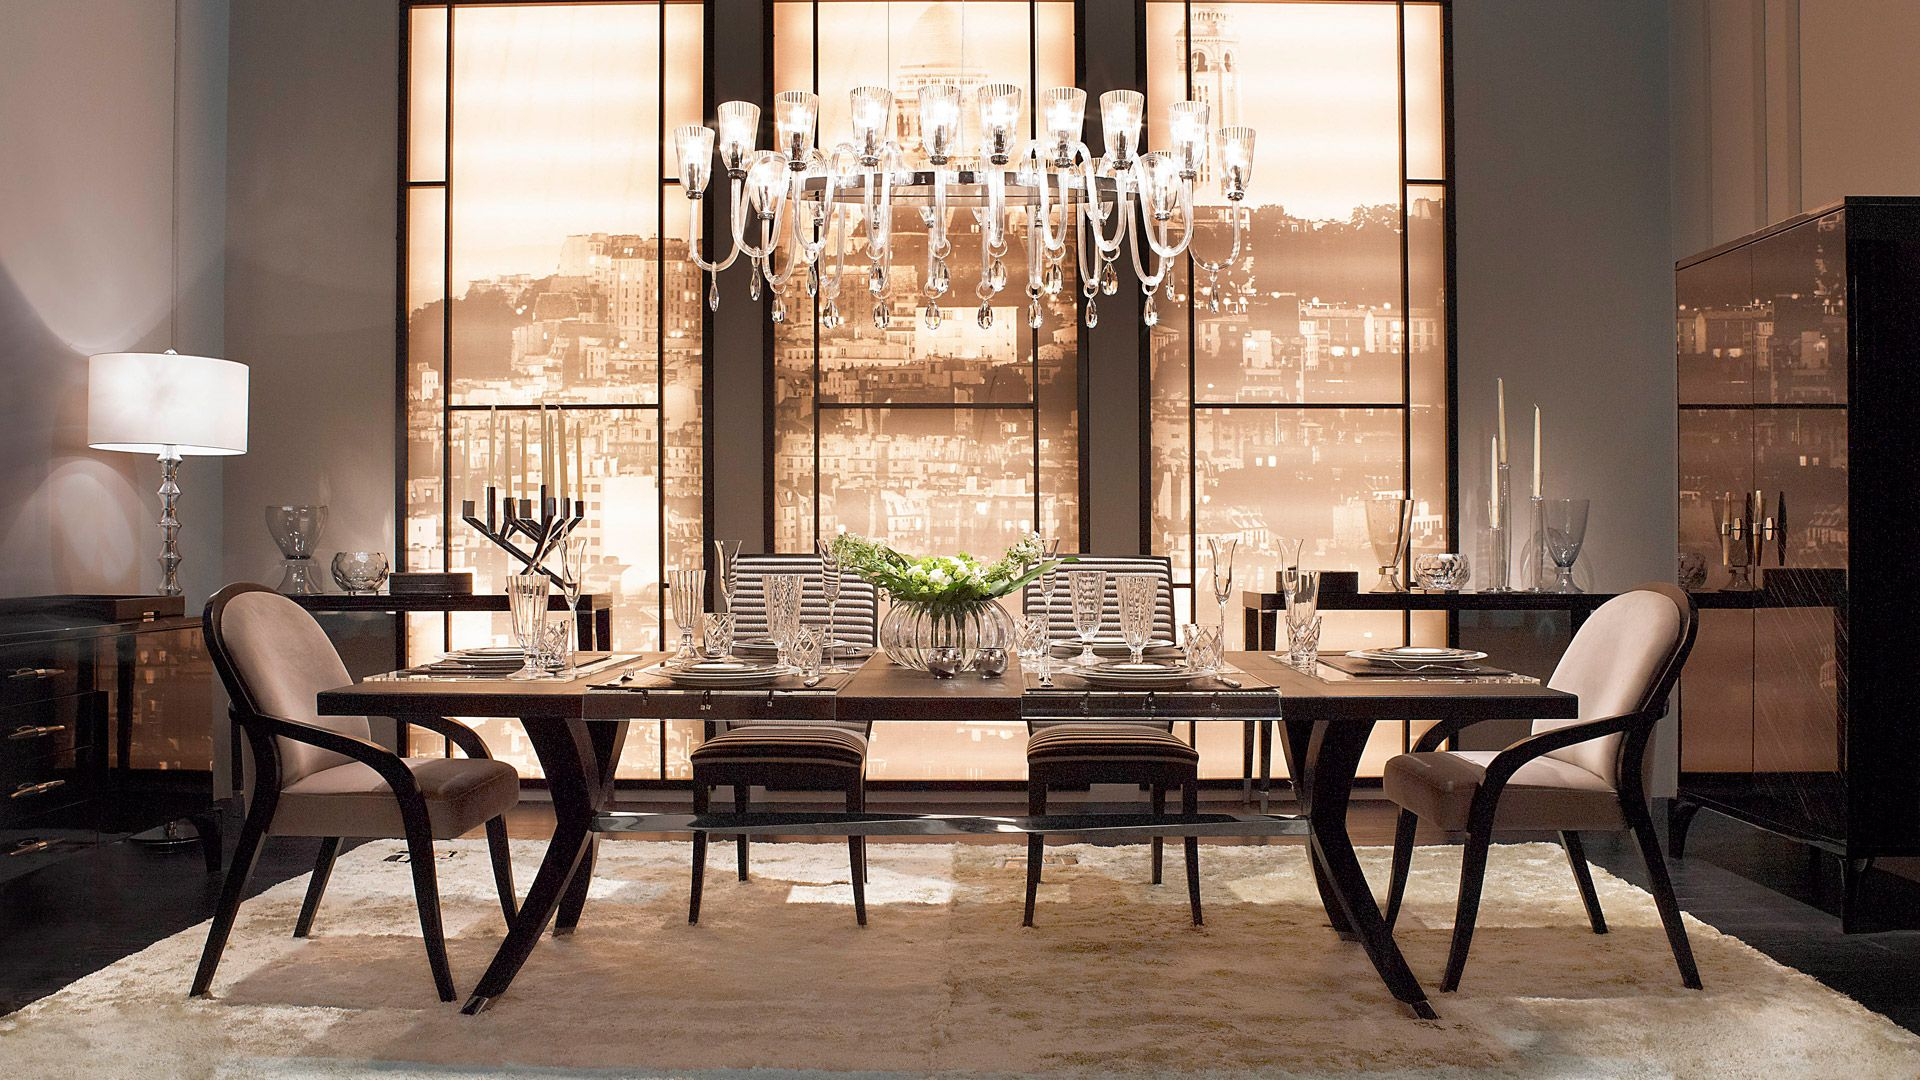 Dining Room Sets Is Your Main Decoration Focus What Thougth When We Say Italian Furniture Designers Pick Best Inspirations